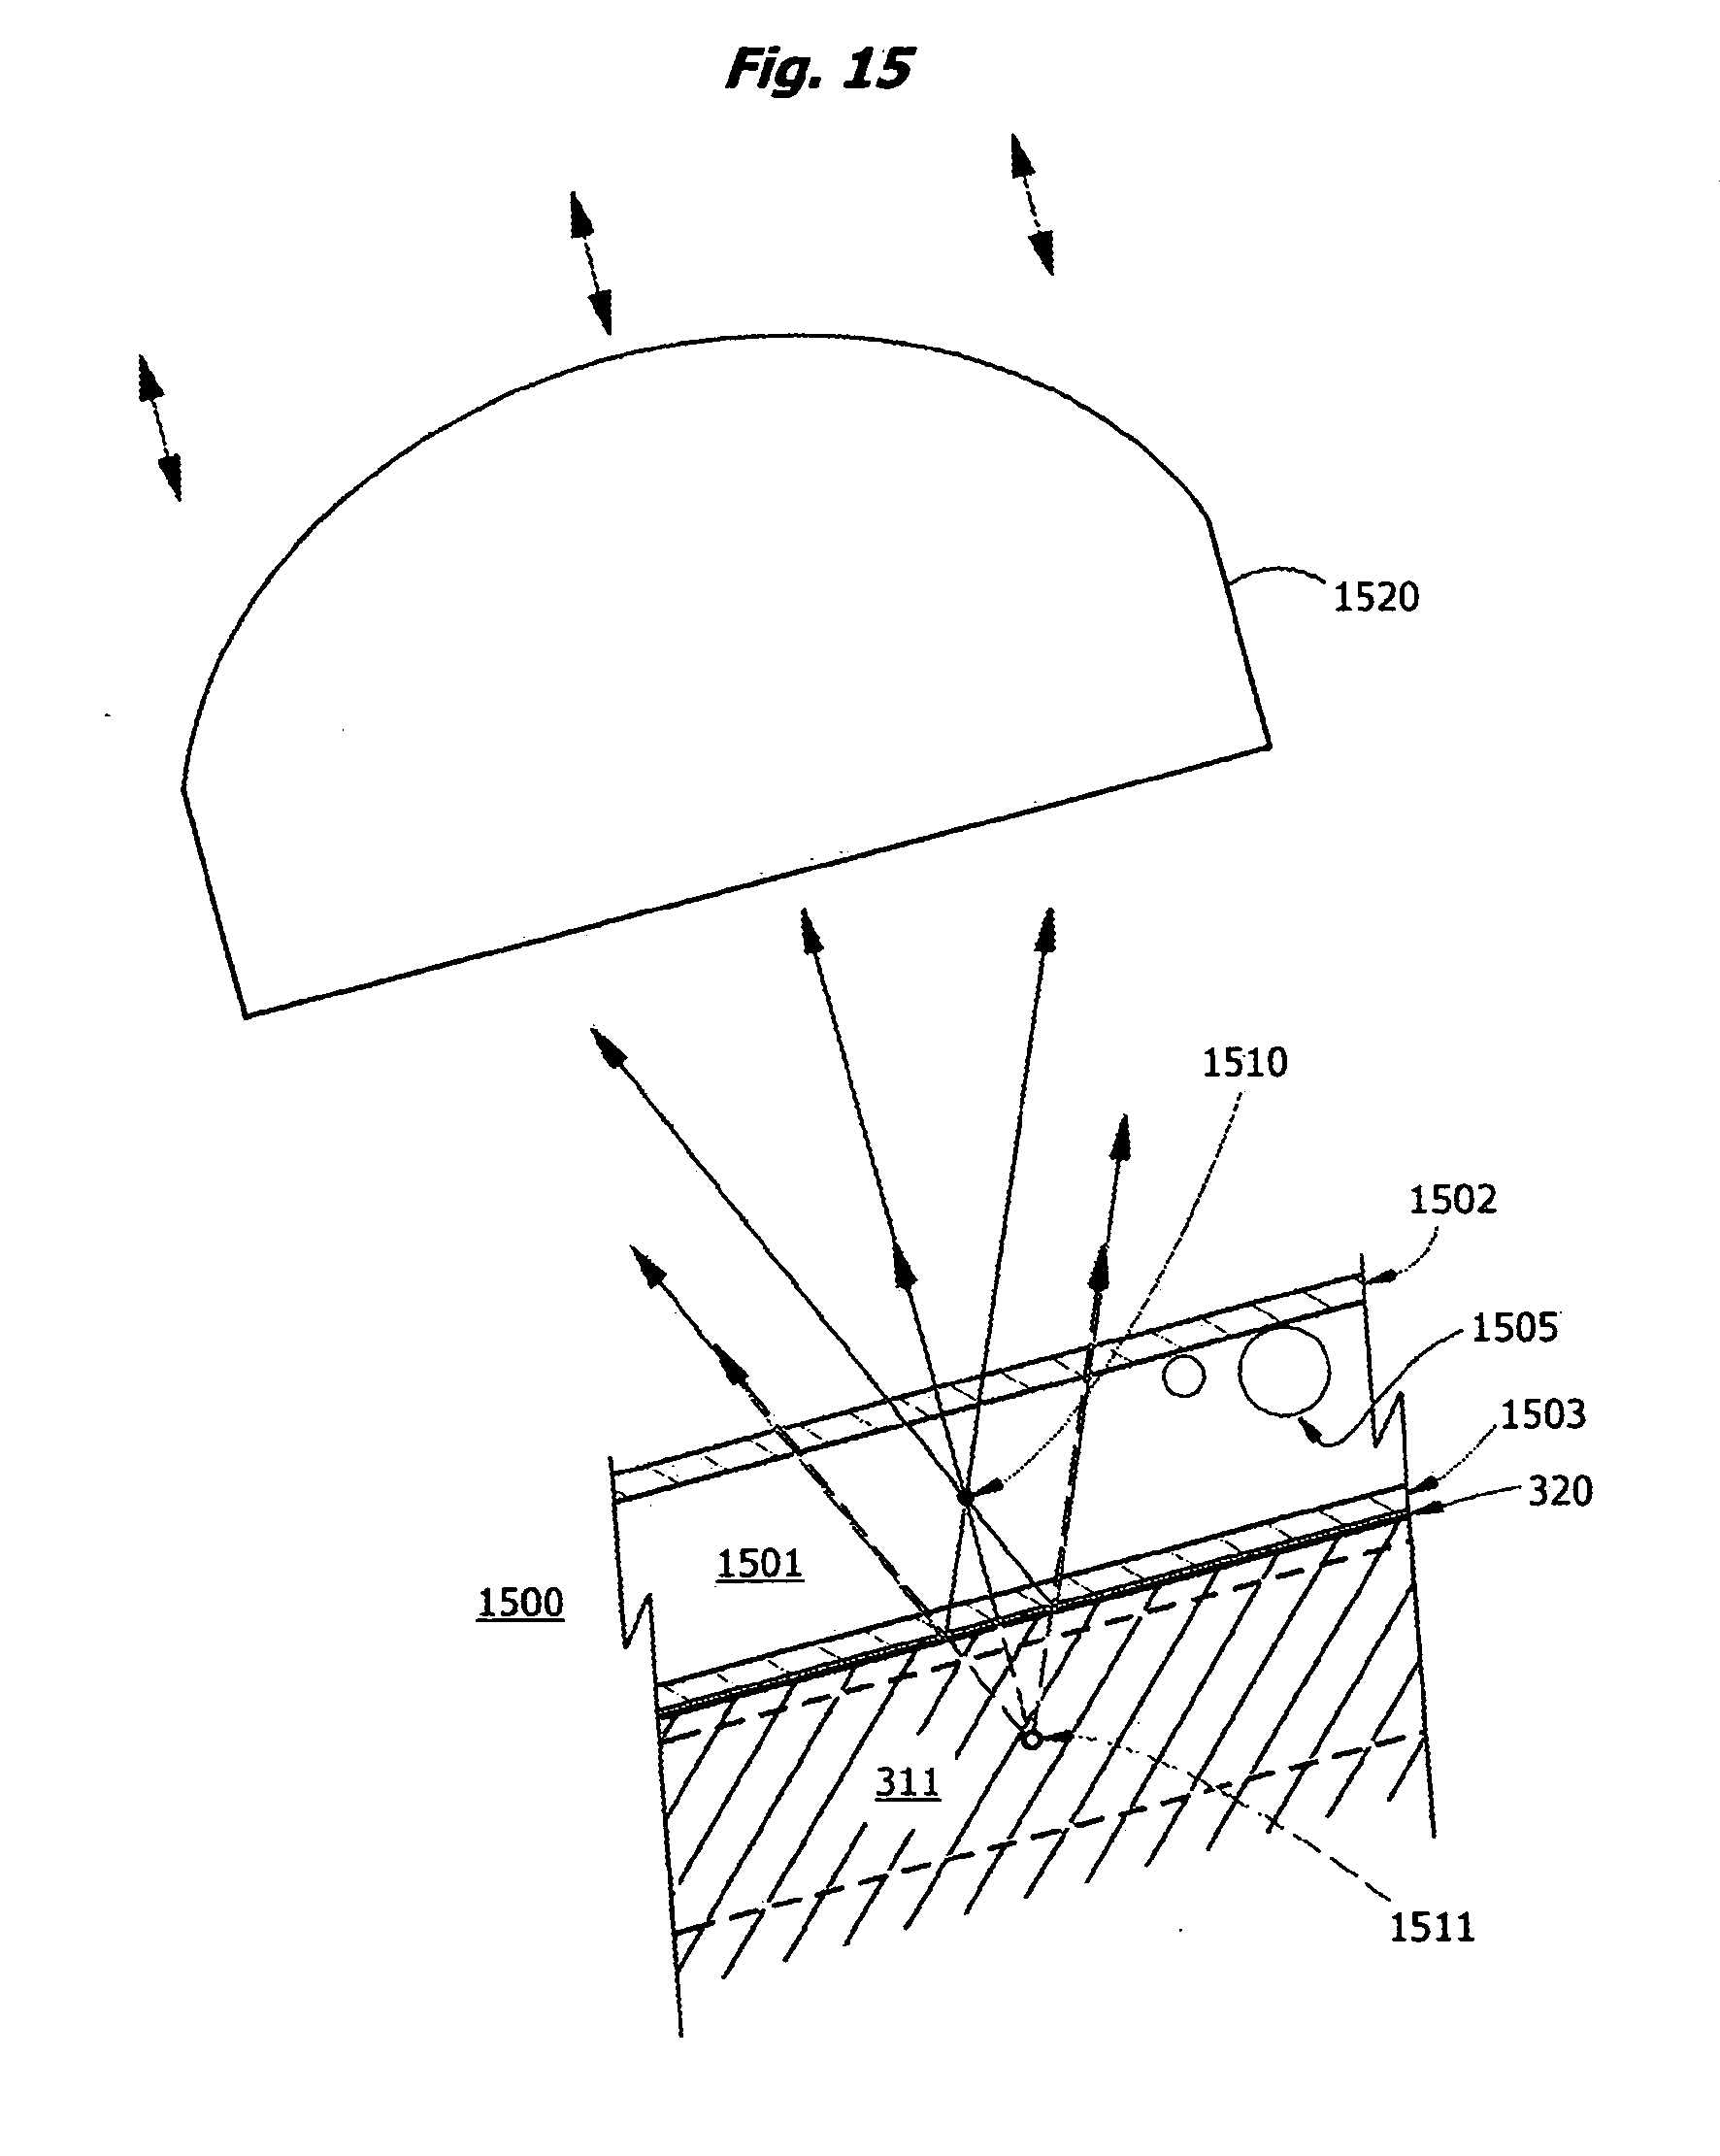 Patent US20130130262 - Sample-to-answer microfluidic ... on 2000 civic spark plugs, 2000 civic thermostat replacement, 2000 civic ecu location, 2000 civic oil pump, 2000 civic automatic transmission, 2000 civic distributor, 2000 civic firing order, s2000 wiring diagram, 2000 civic ignition switch, 2000 civic clutch fluid, 2000 civic schematic, 1999 civic wiring diagram, 96 civic wiring diagram, vtec wiring diagram, 2000 civic fuel system, 2000 civic engine swap, 2000 civic oil cooler,